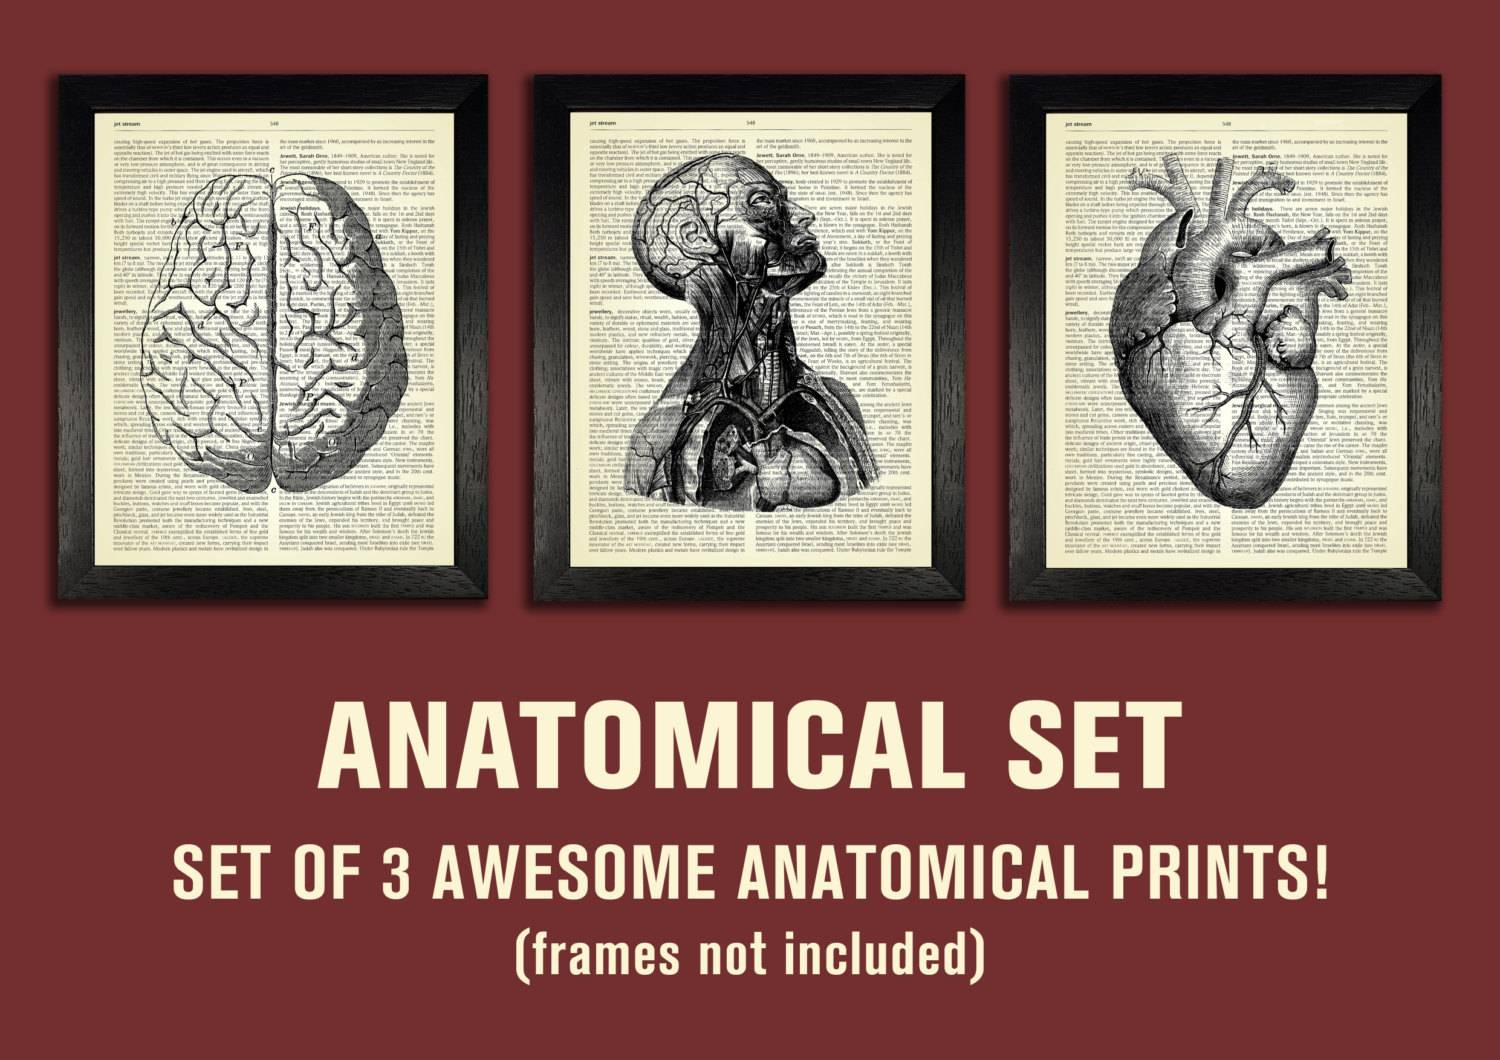 Anatomical Set Anatomy Print Set Medical Wall Art Intended For 2018 Medical Wall Art (Gallery 1 of 20)